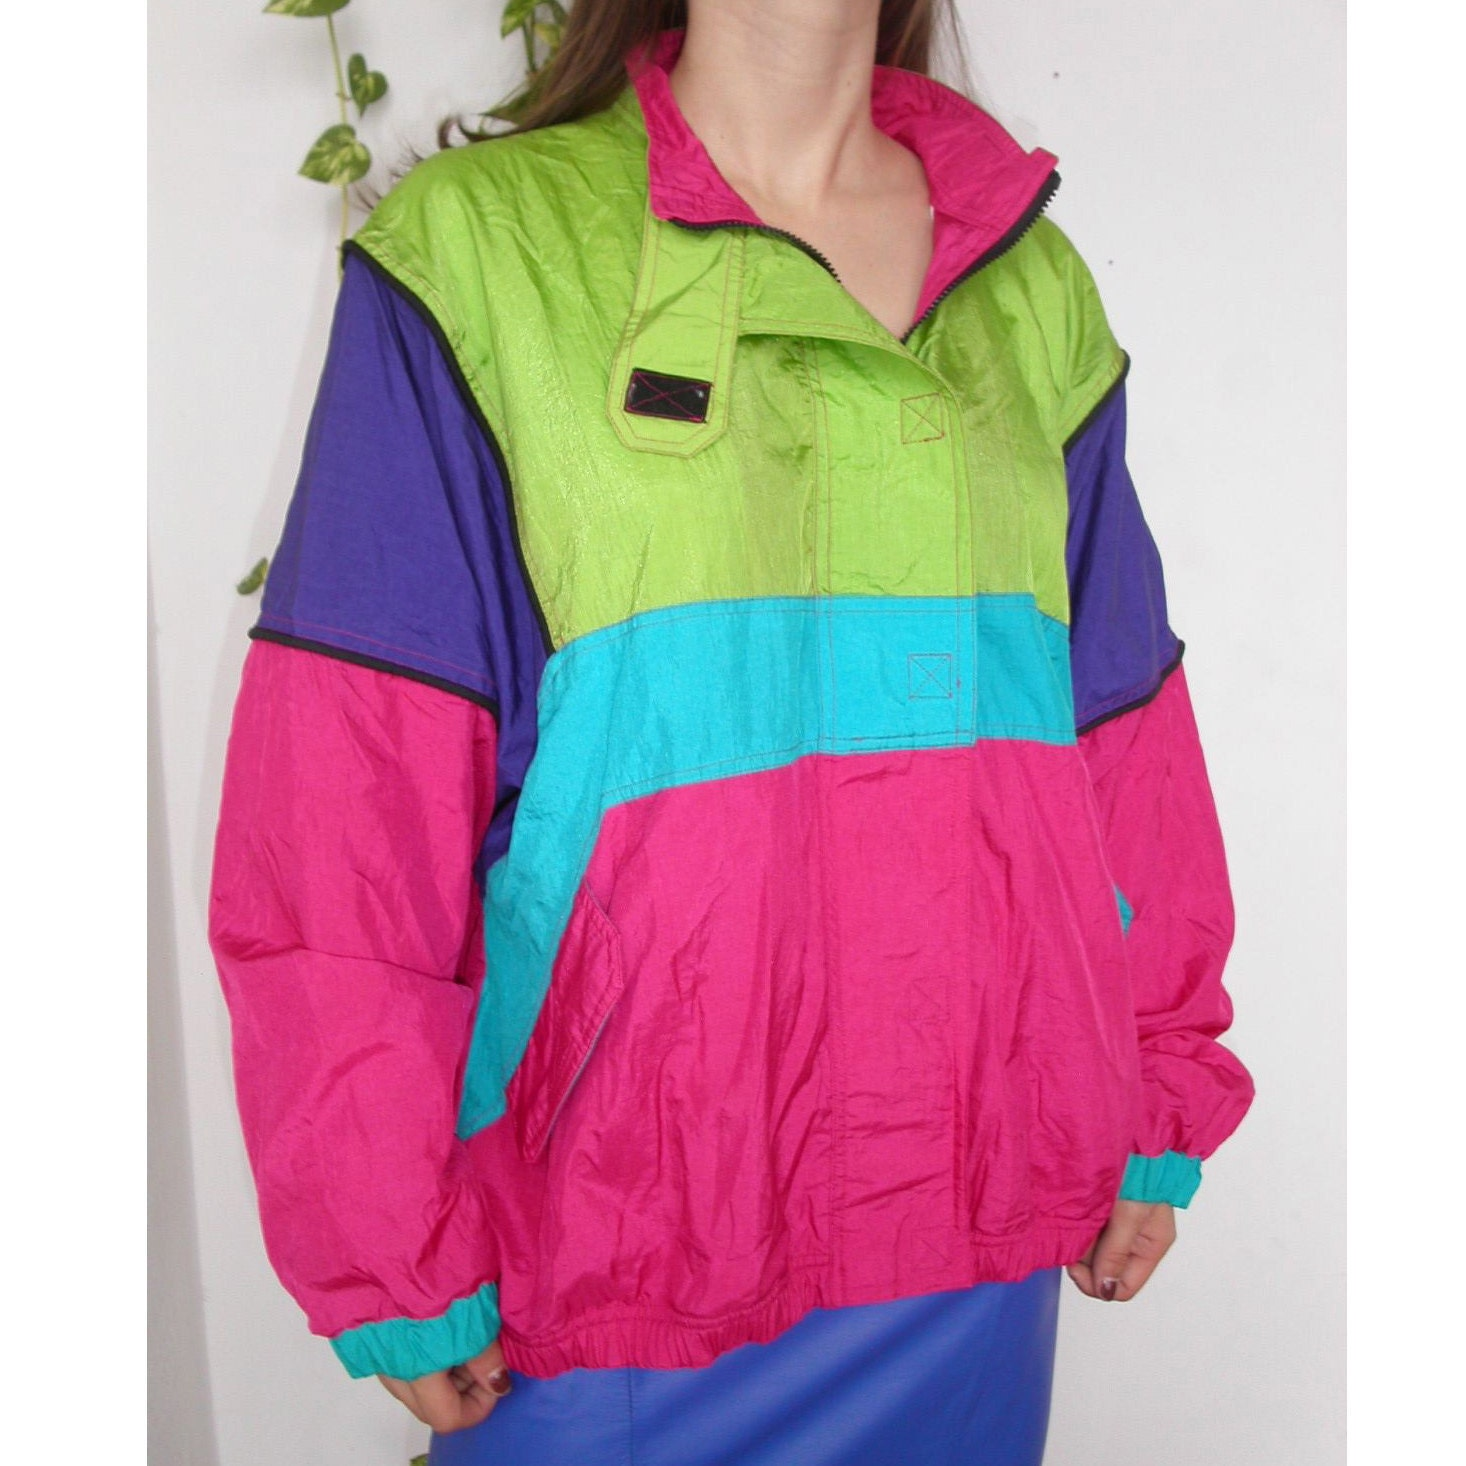 Neon warmup vintage 80s fluorescent track jacket by Kitschclassic